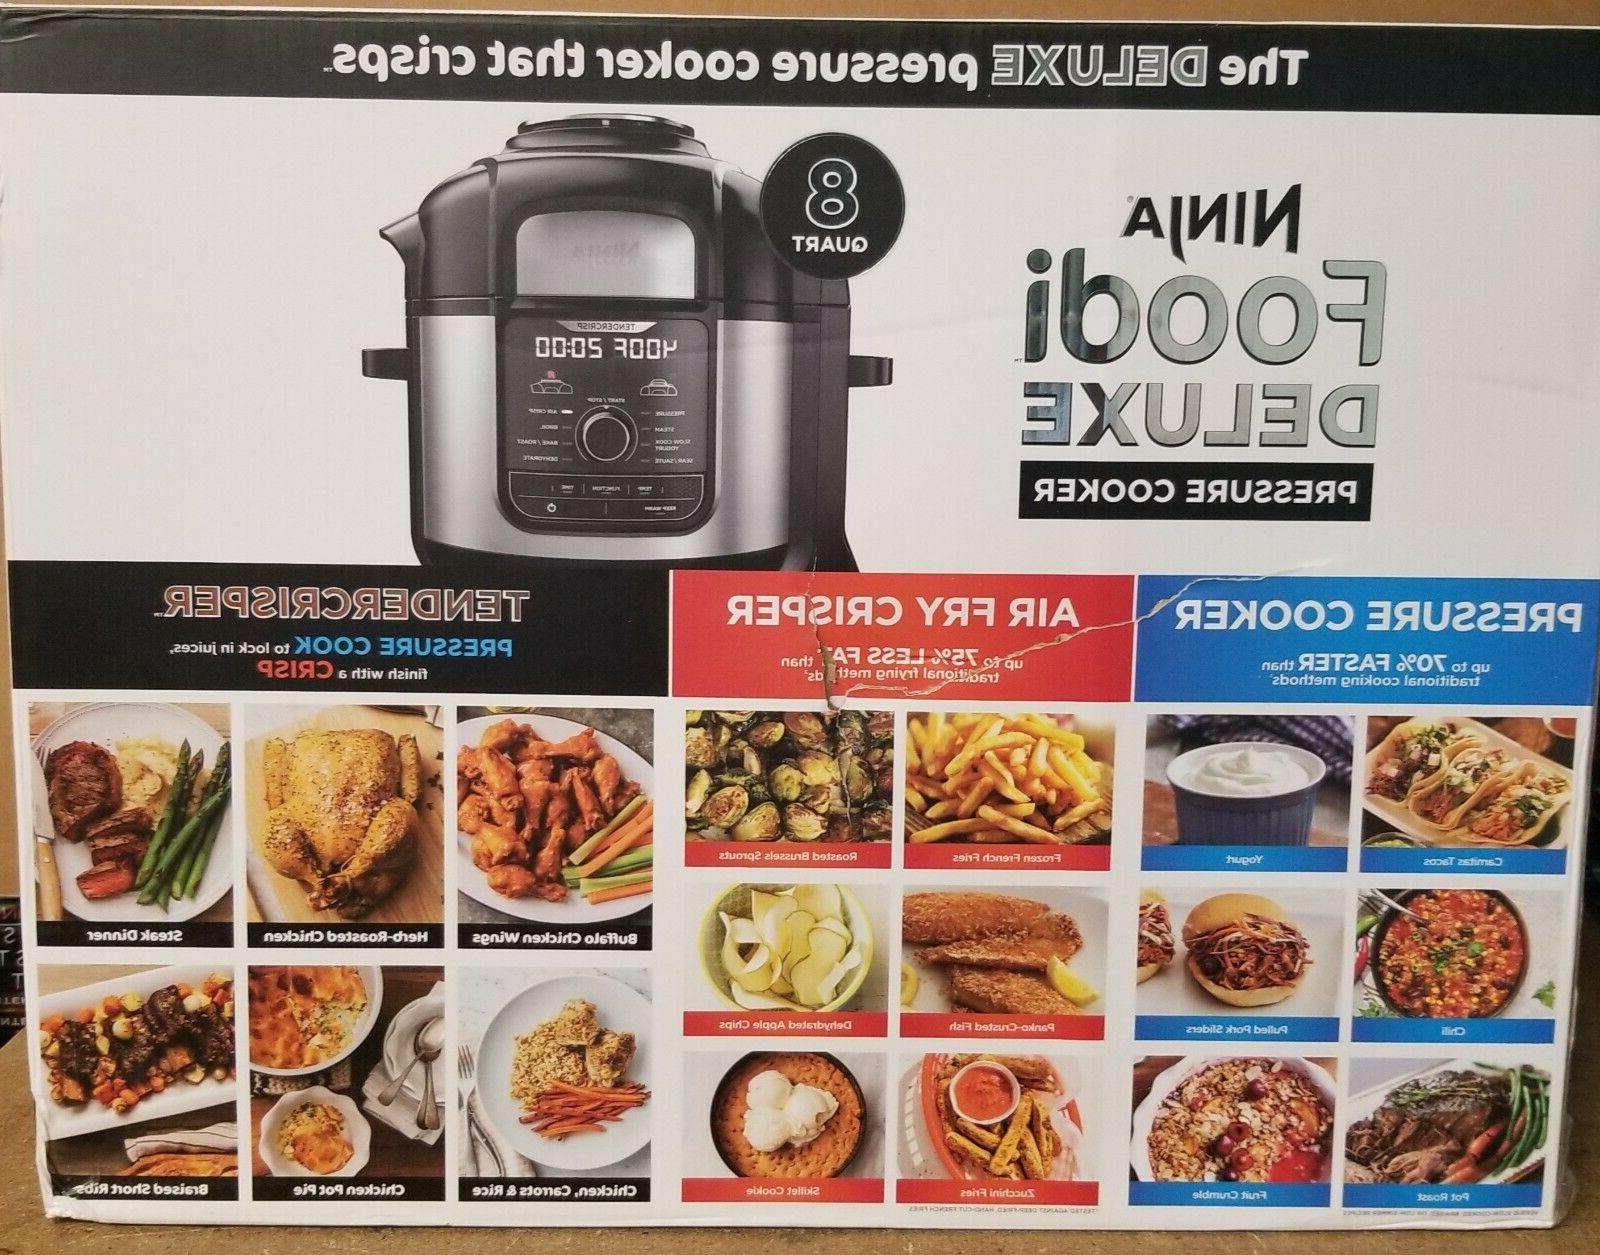 NEW Ninja Foodi 9-in-1 Cooker & Fryer